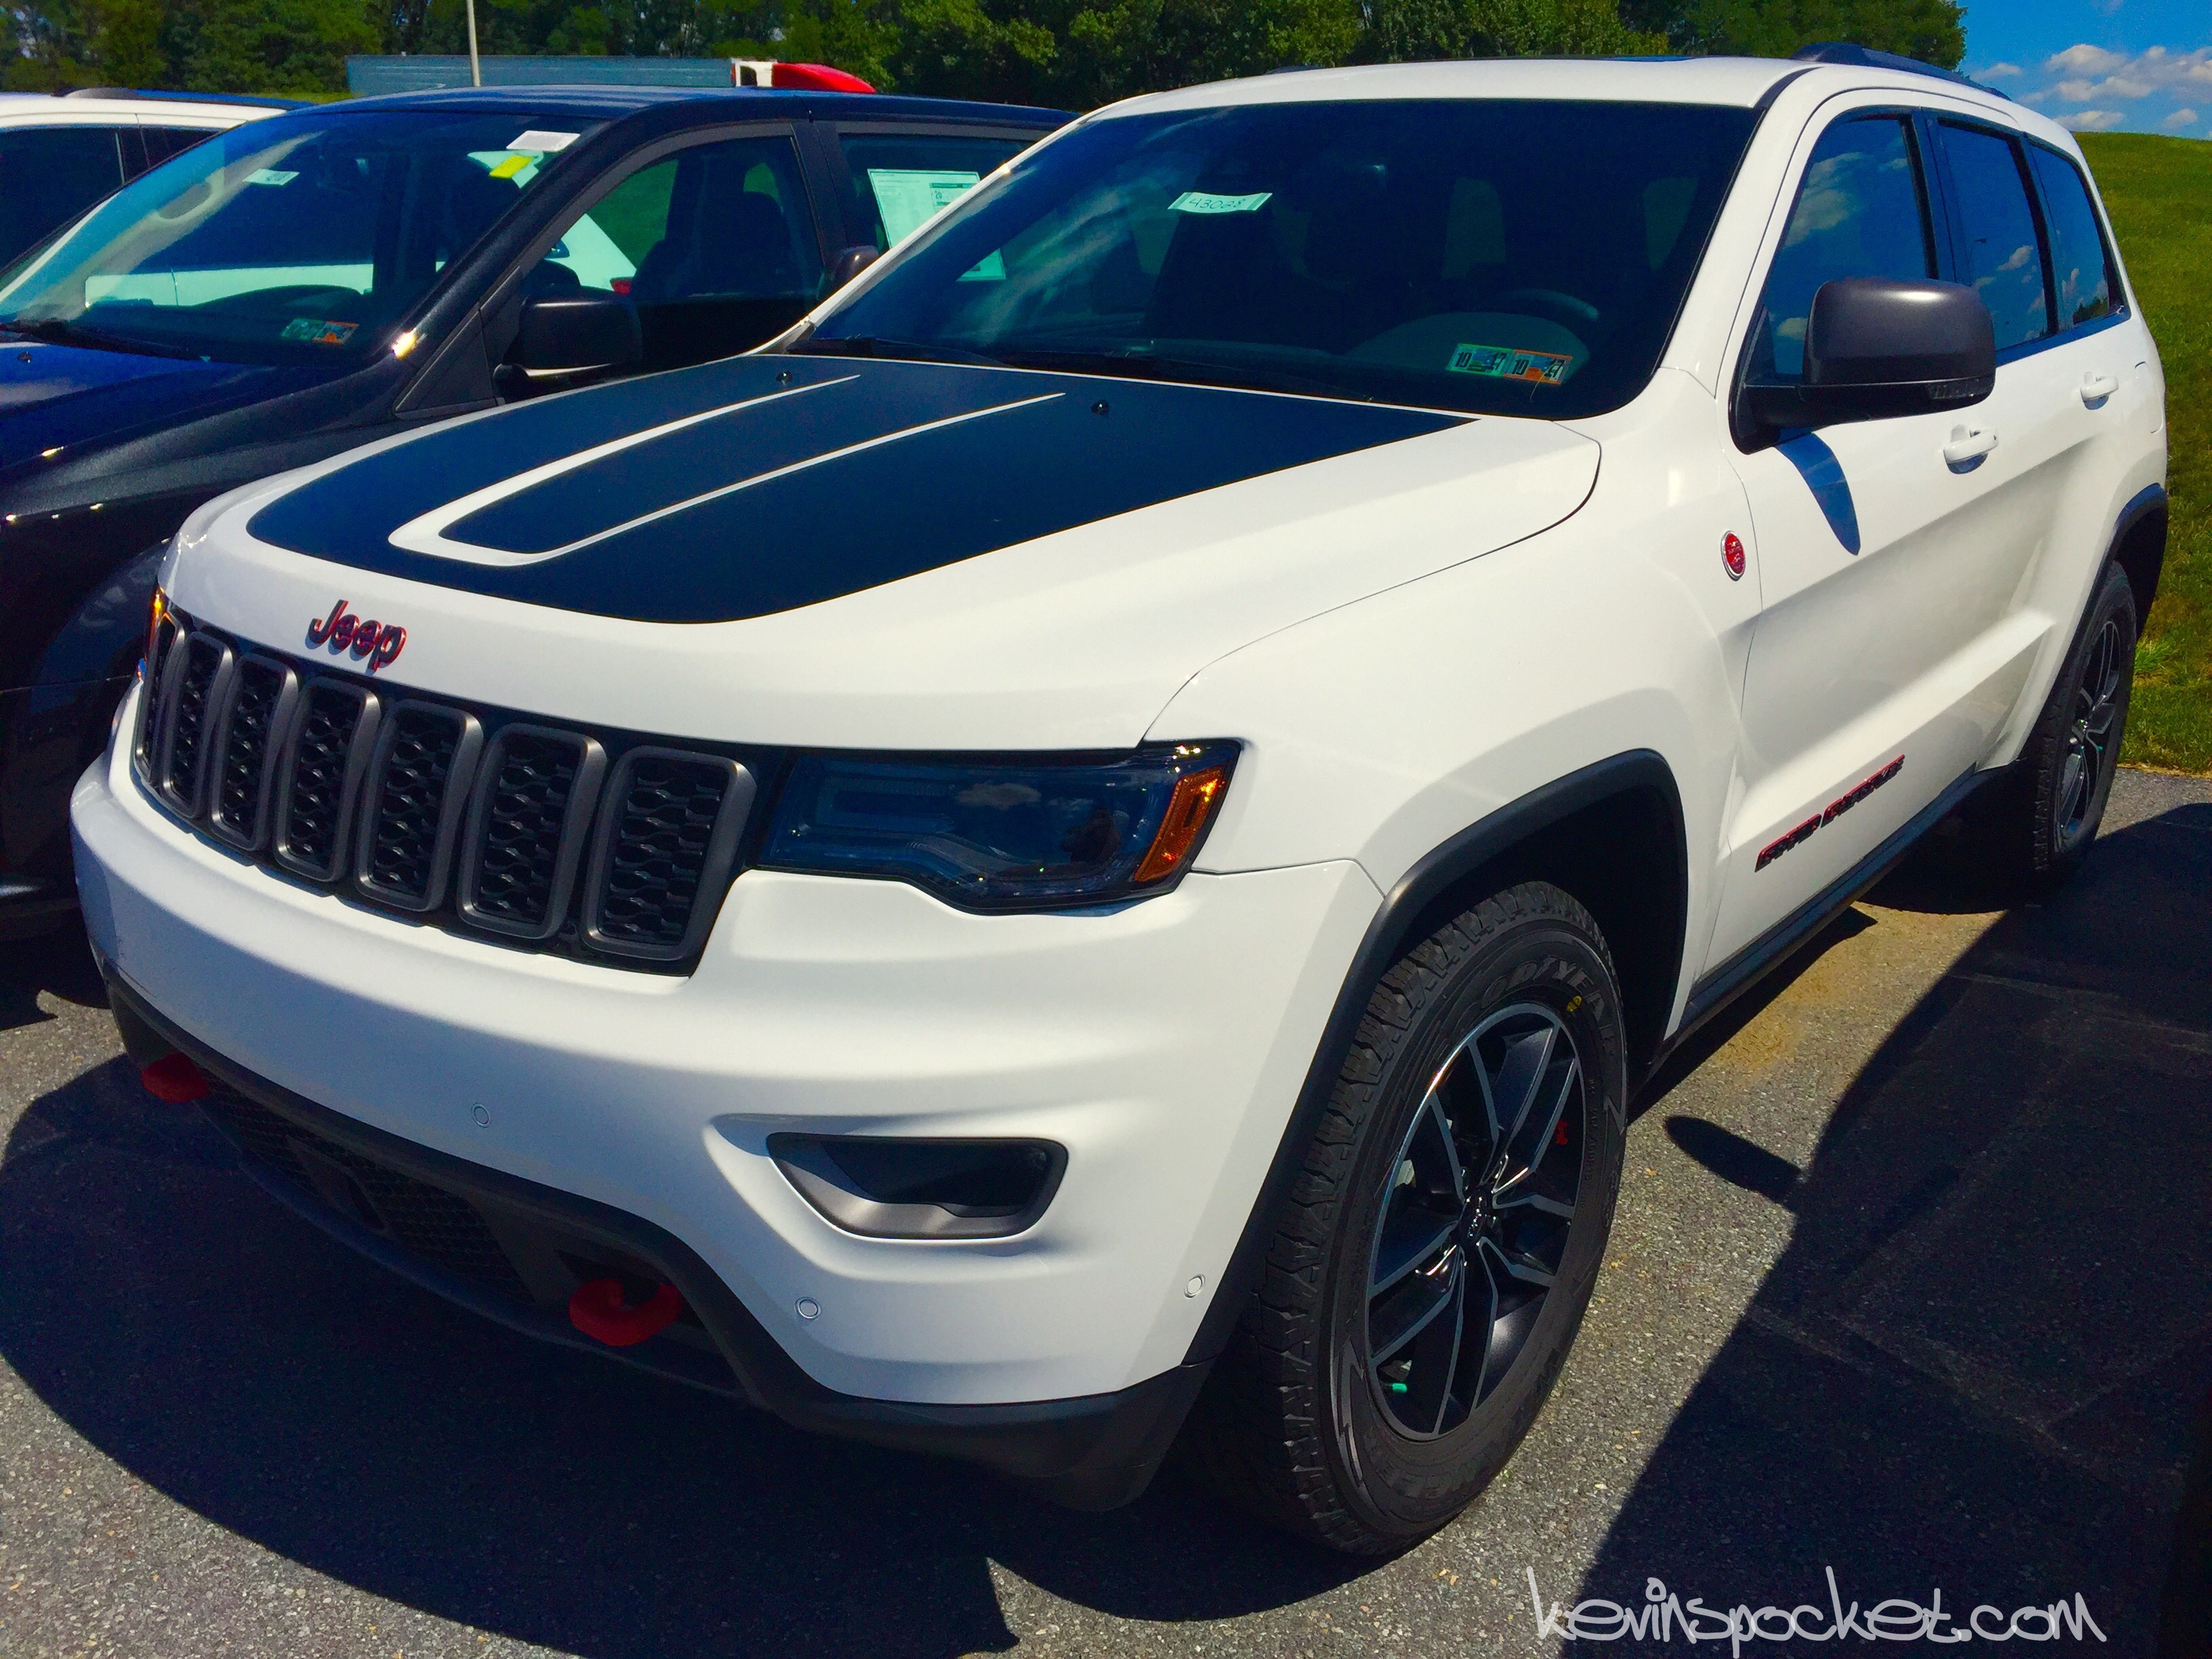 2017 Jeep Grand Cherokee Trailhawk Spotted – Kevinspocket